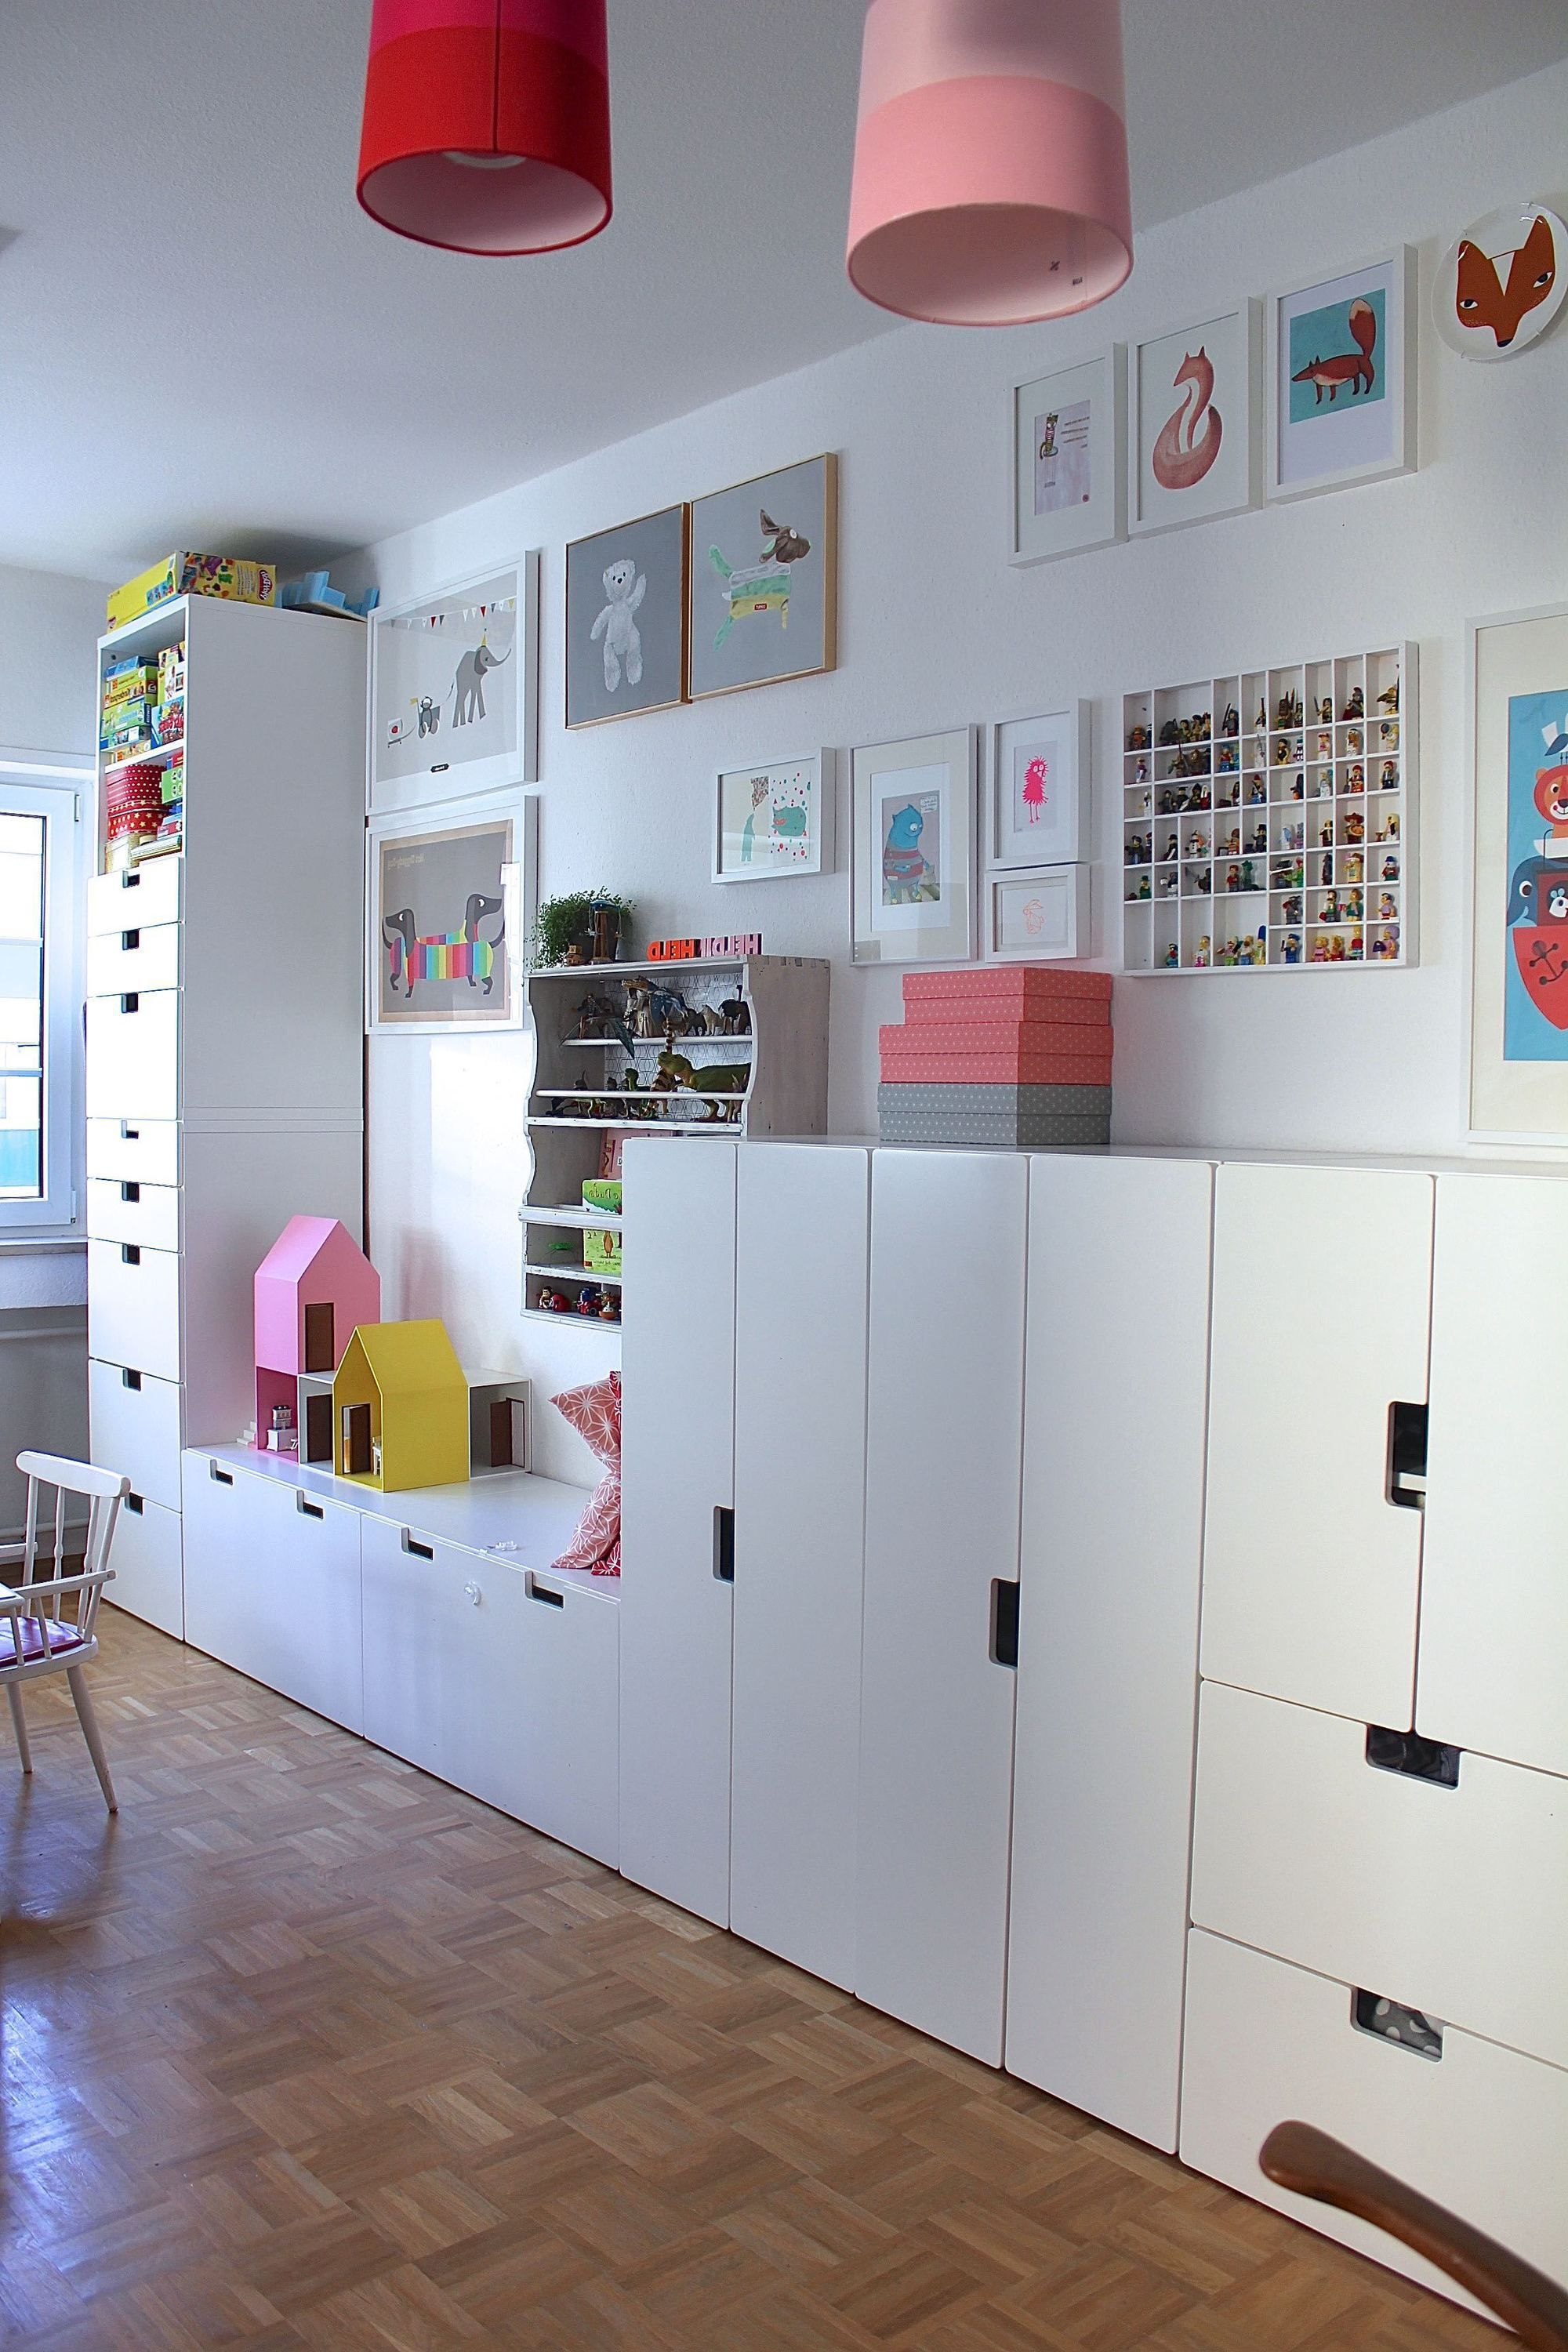 Babyzimmer ikea stuva  Children's room - the territory STUVA More nursery interiors ...